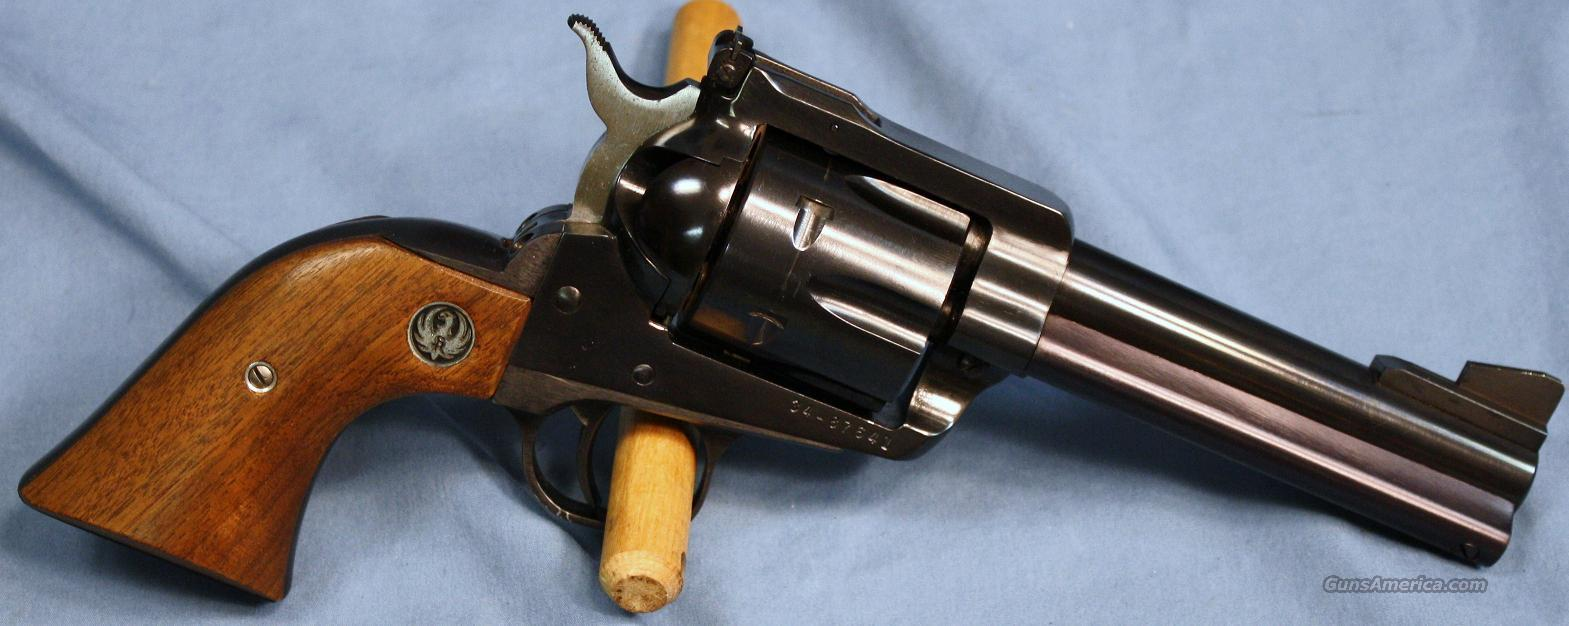 Ruger Blackhawk Single Action Revolver .357 Magnum Made in 1979  Guns > Pistols > Ruger Single Action Revolvers > Blackhawk Type